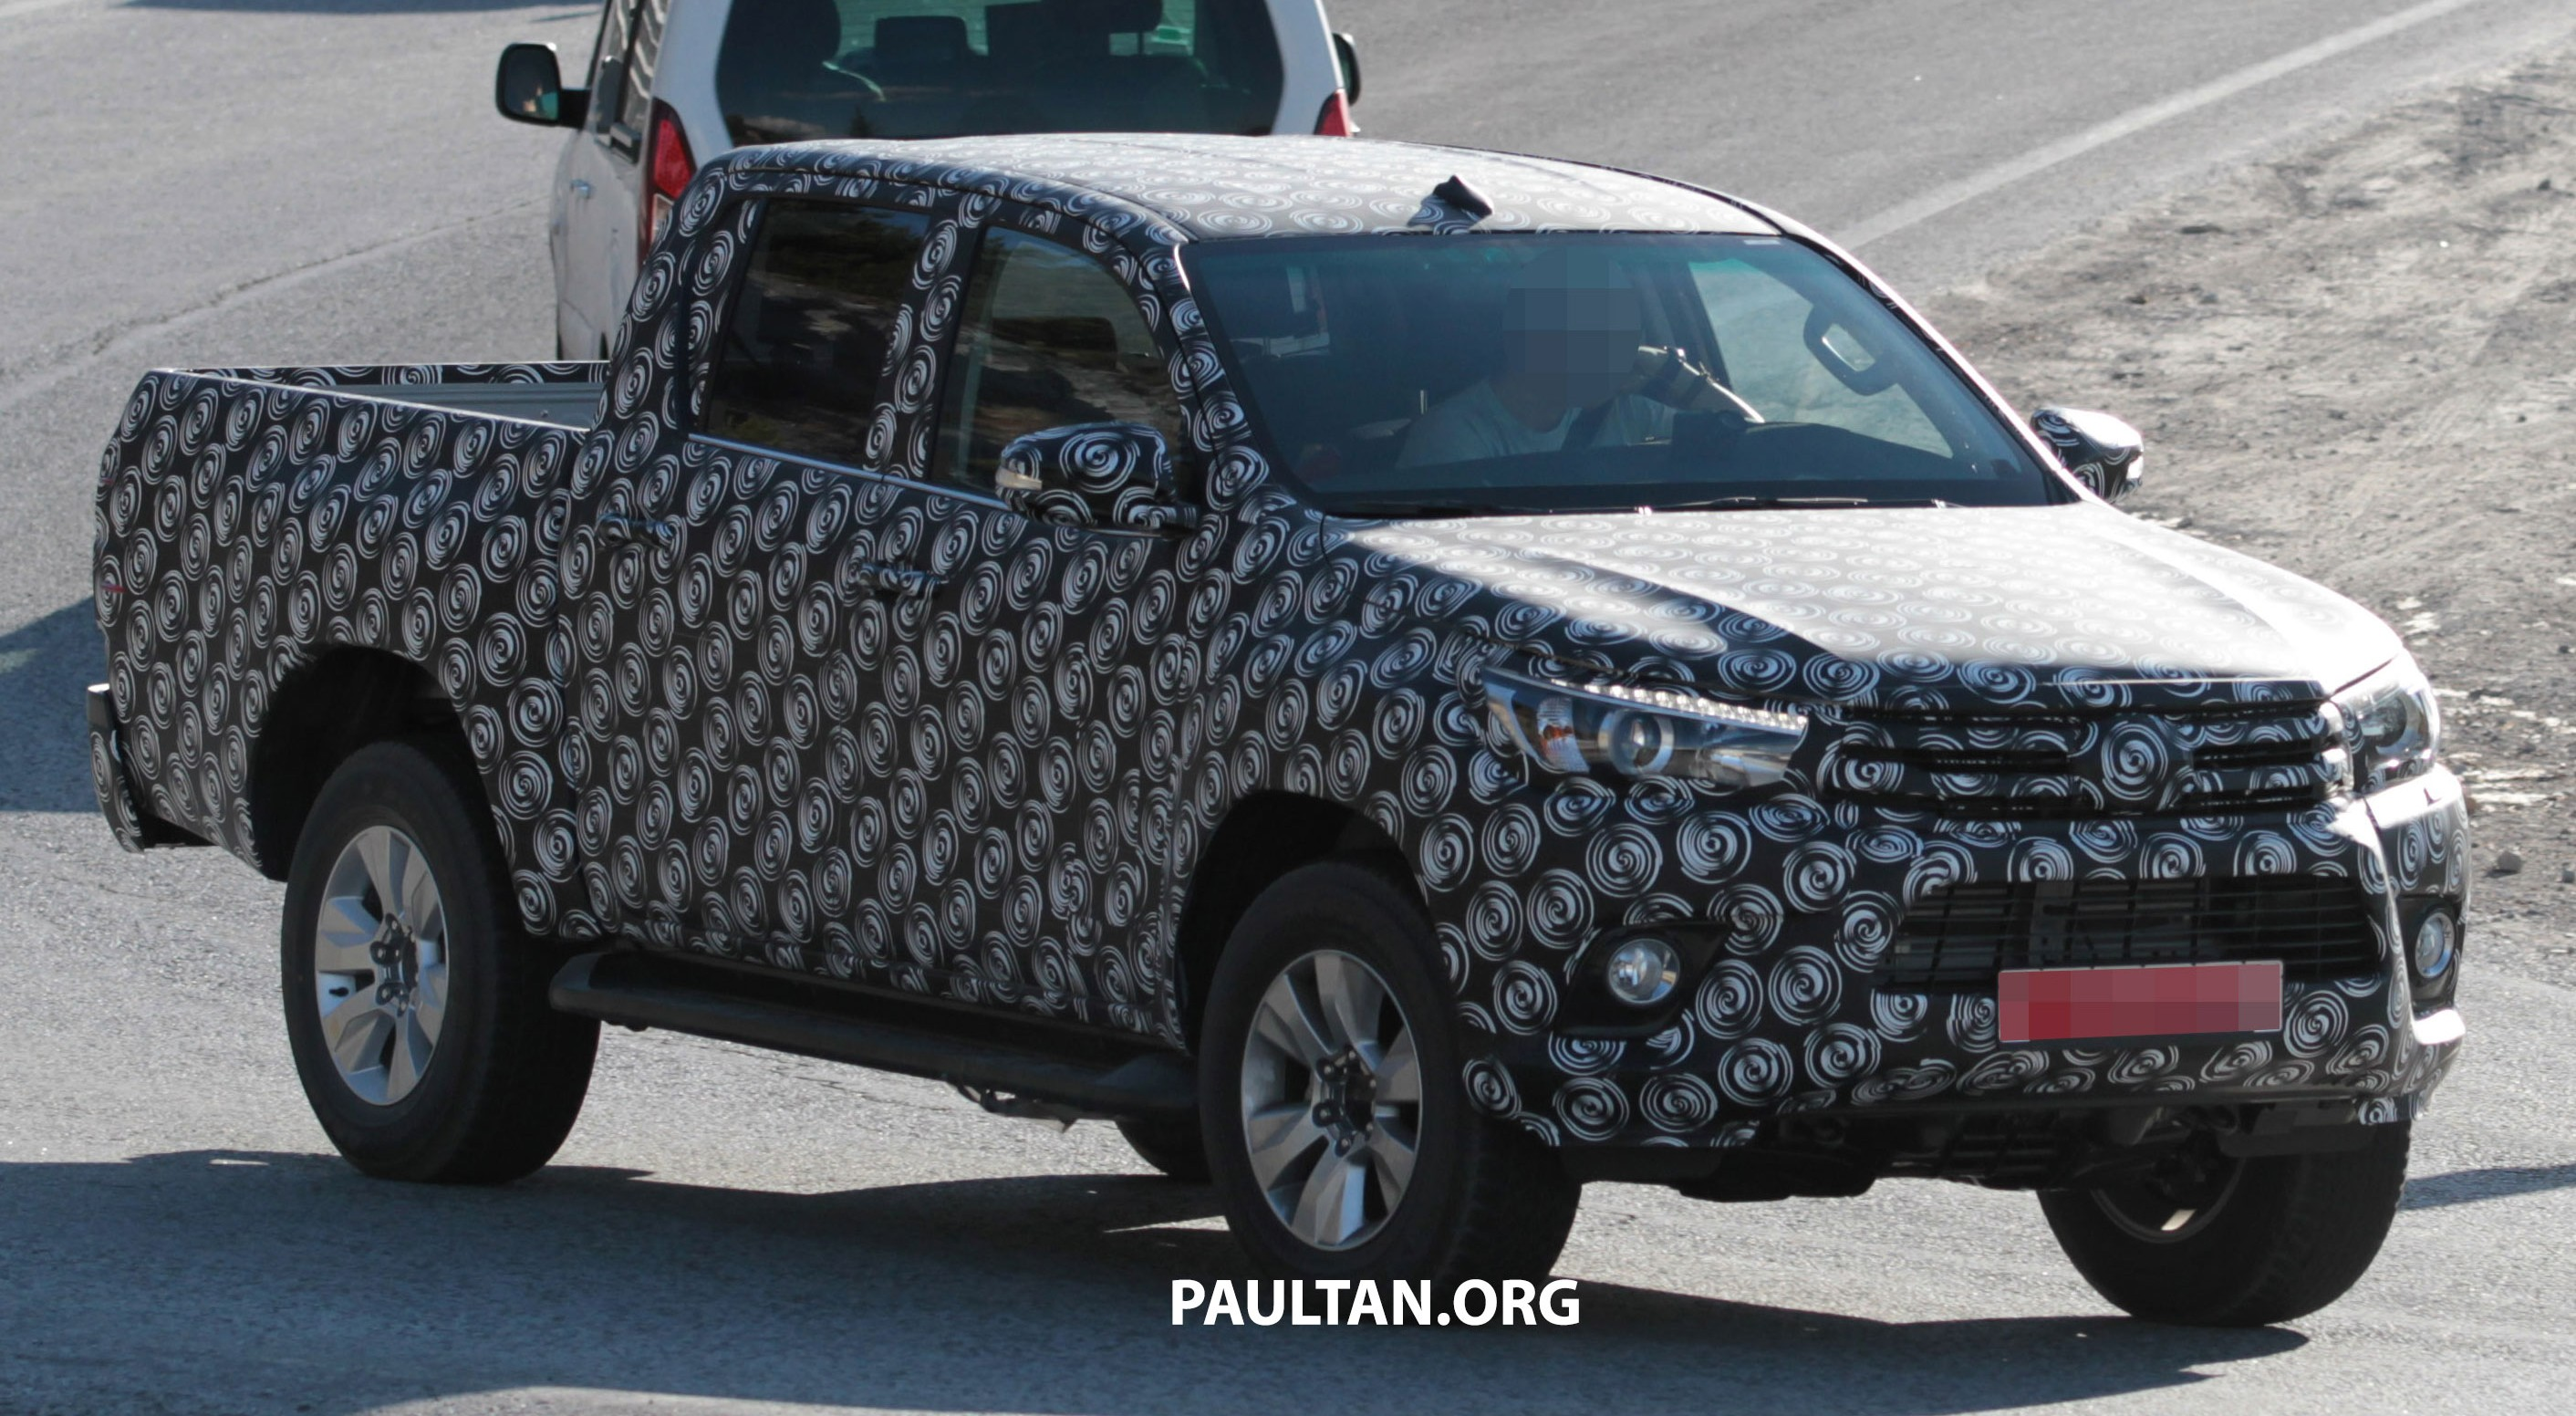 2015 Toyota Hilux Spotted In Europe Clearer Shots Paul